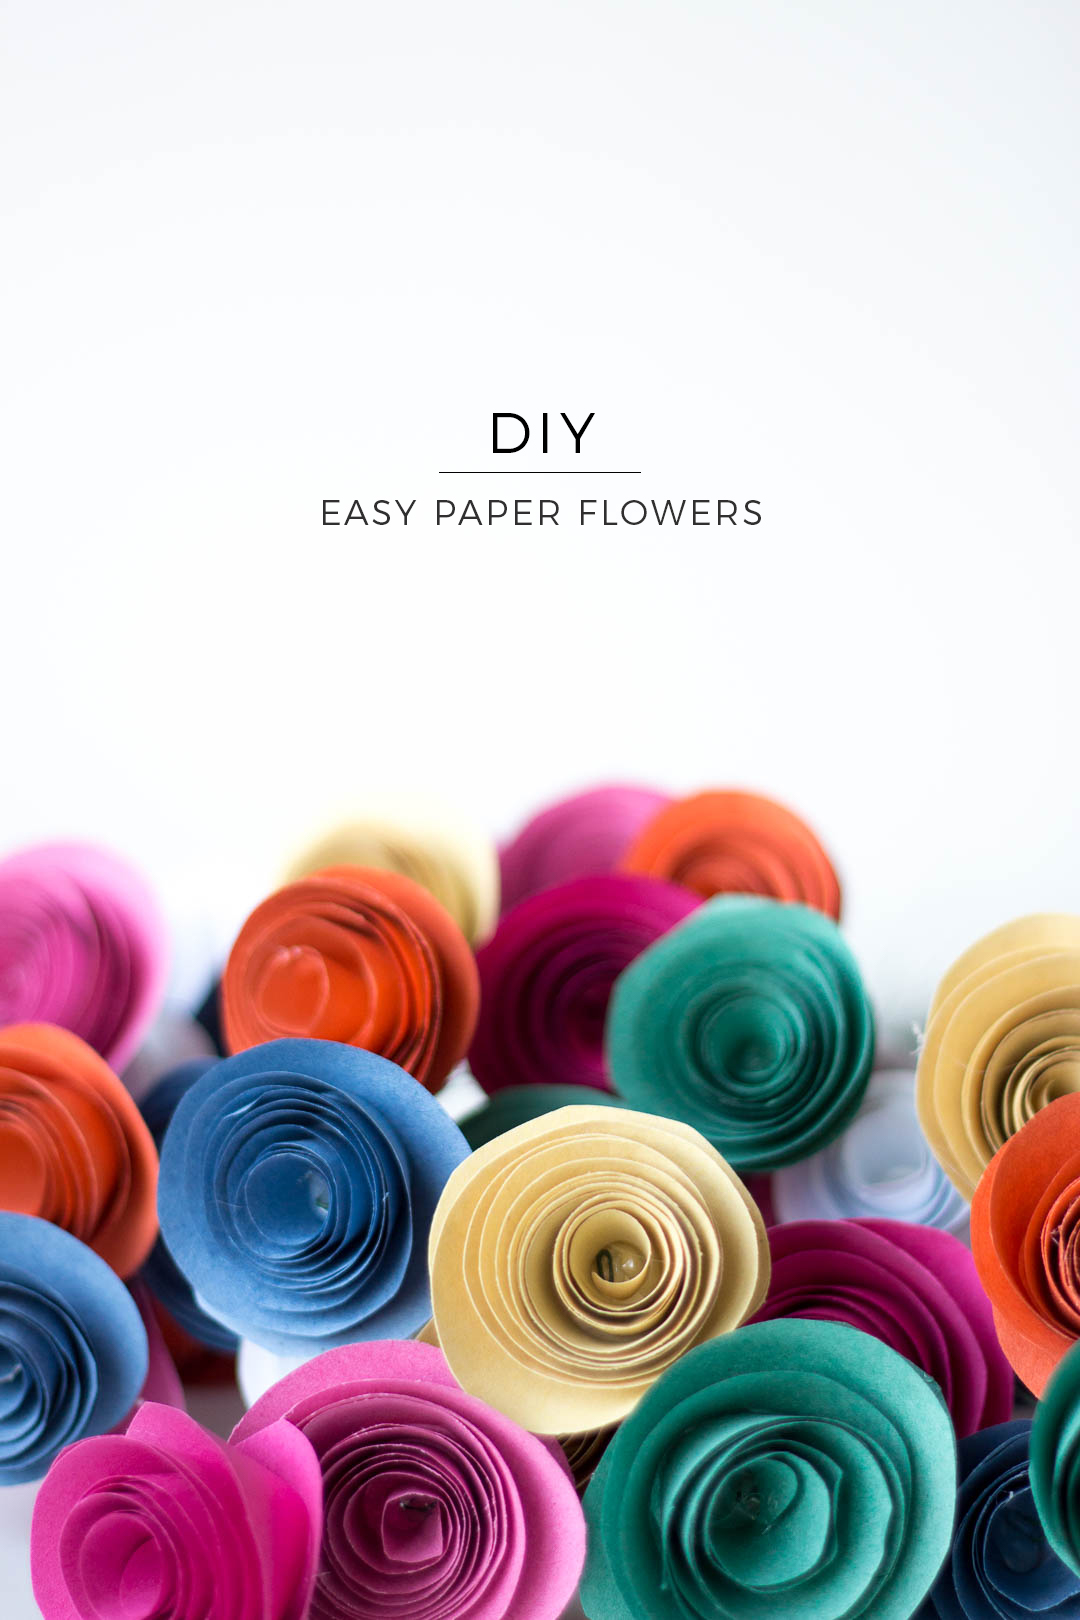 Easy Paper Flowers DIY that look stunning in a bunch. Made with paper, glue and florist wire.